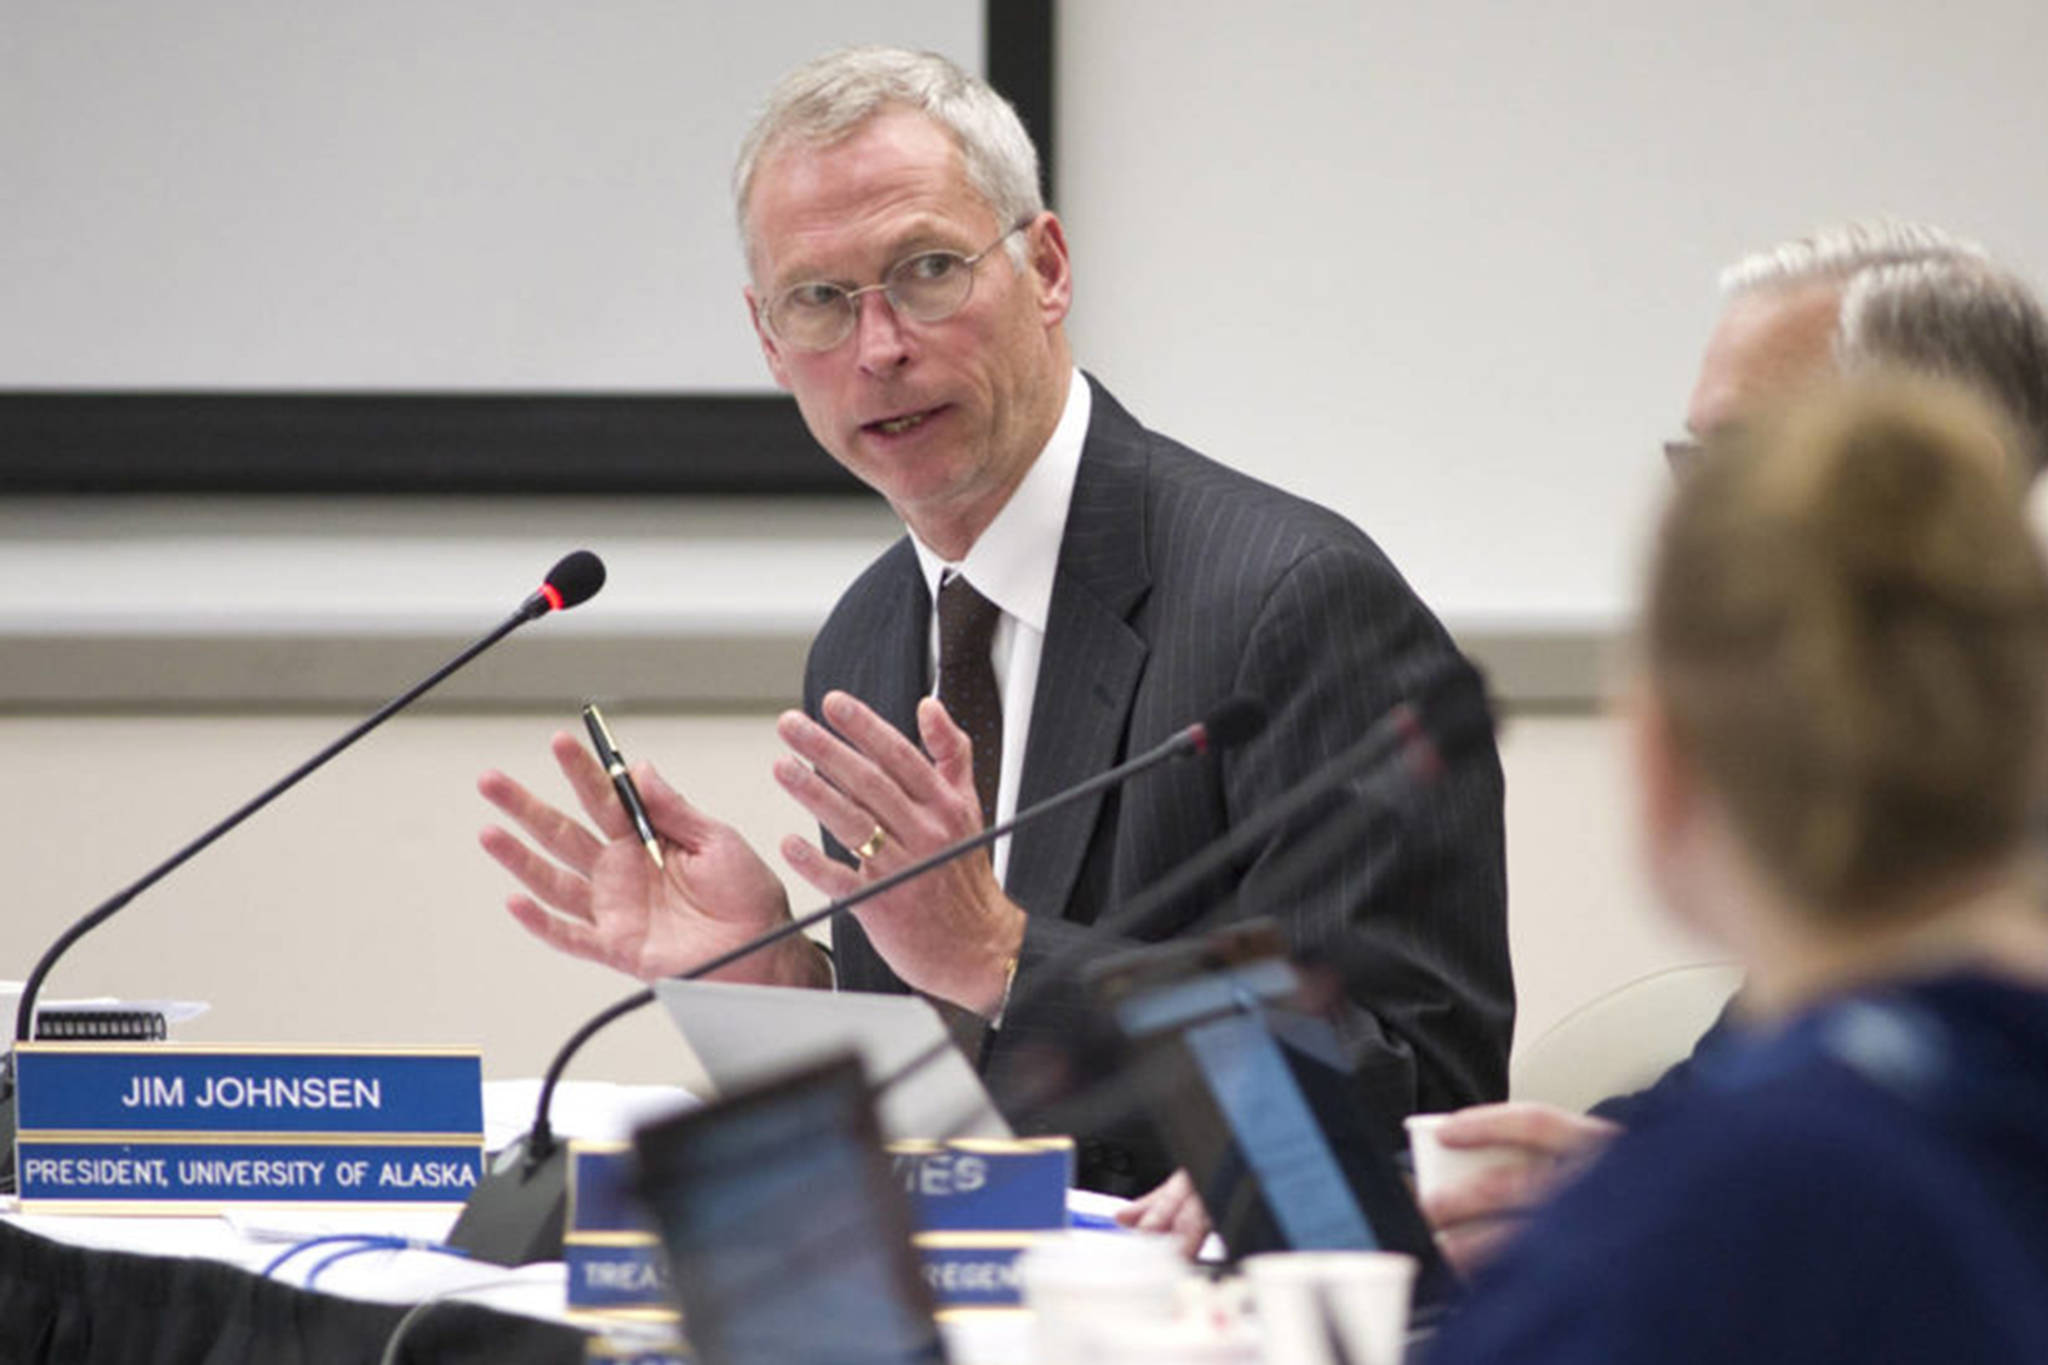 In this file photo from Sept. 15, 2016, University of Alaska President Jim Johnsen makes a presentation to the university's Board of Regents at the University of Alaska Southeast Recreation Center. Johnsen and the UA board discussed tuition increases and budget concerns Friday. (Michael Penn | Juneau Empire File)